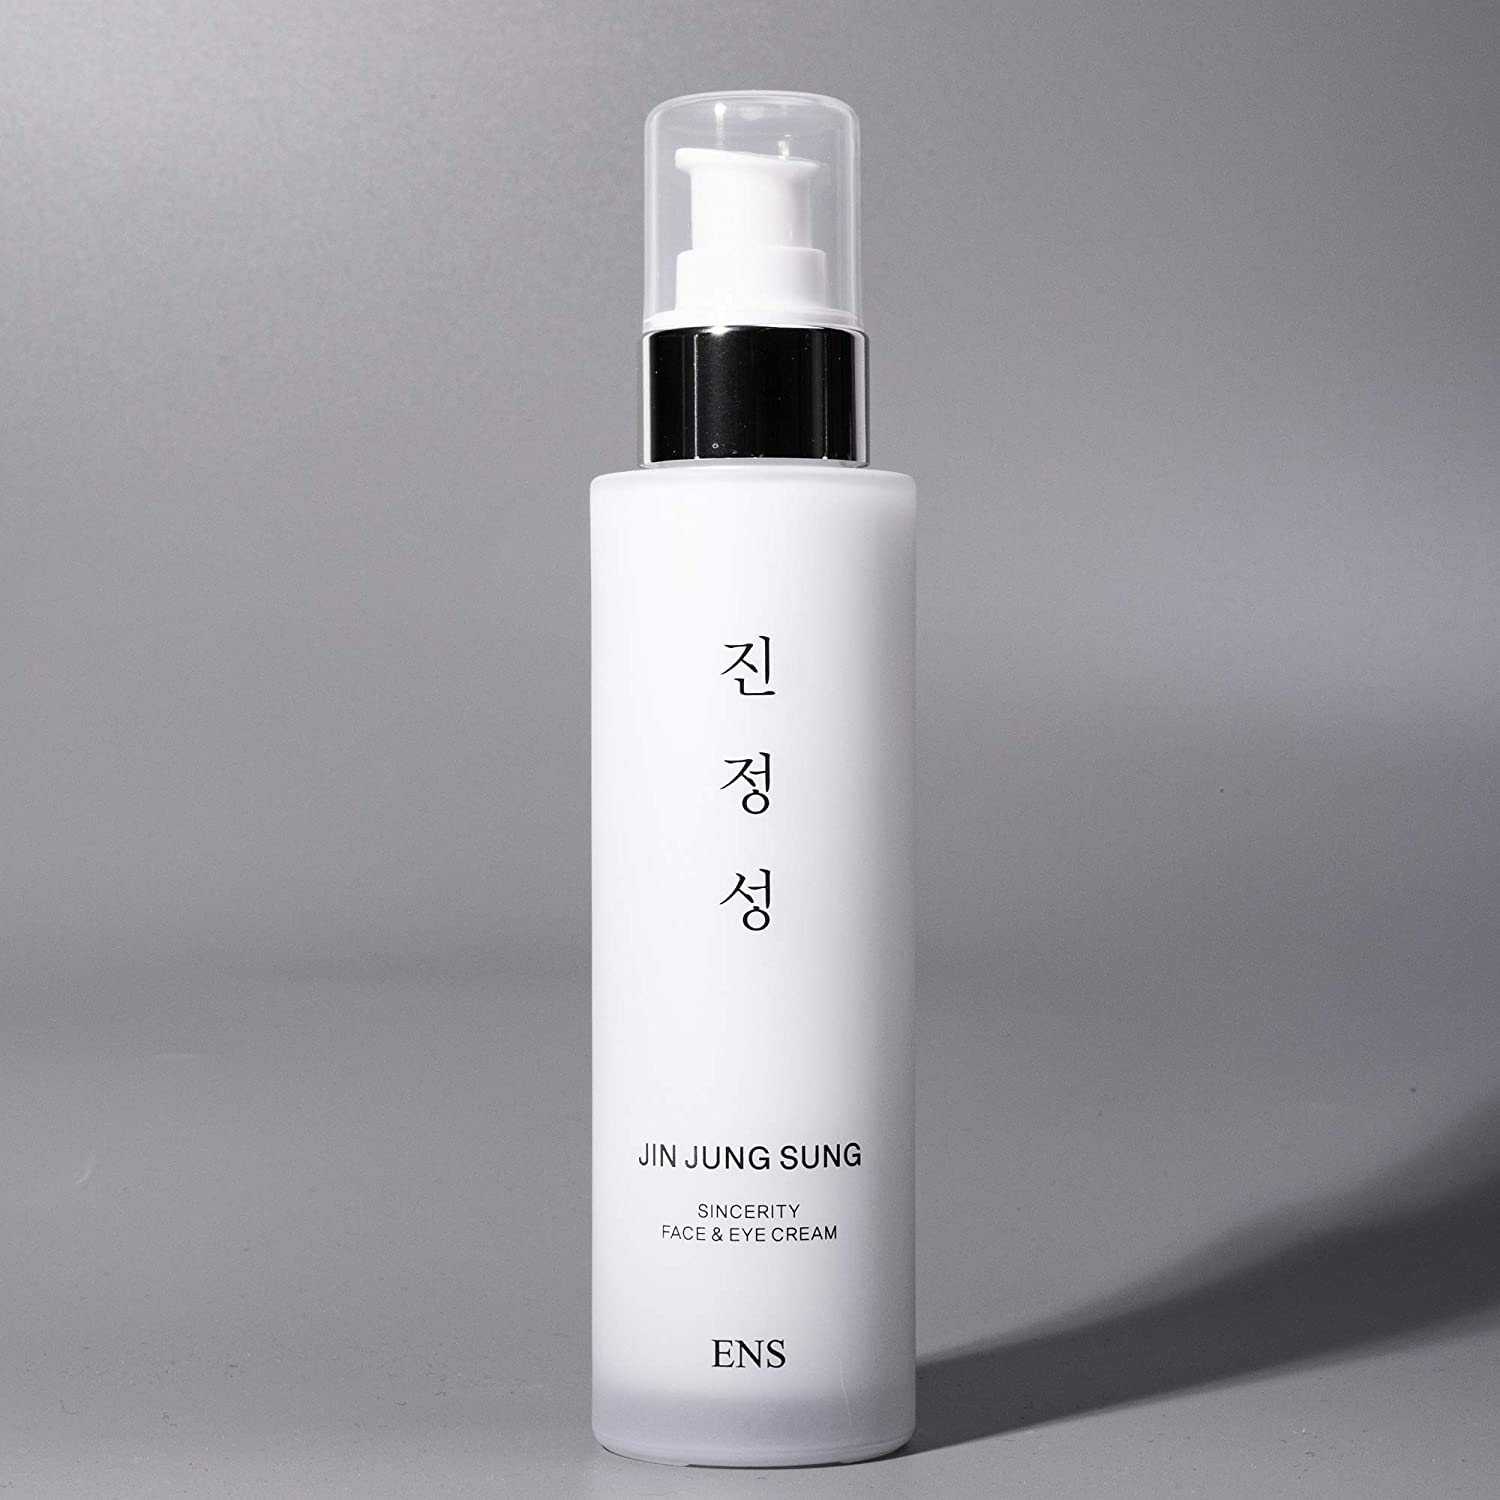 Sincerity Face & Eye Cream by Jin Jung Sung